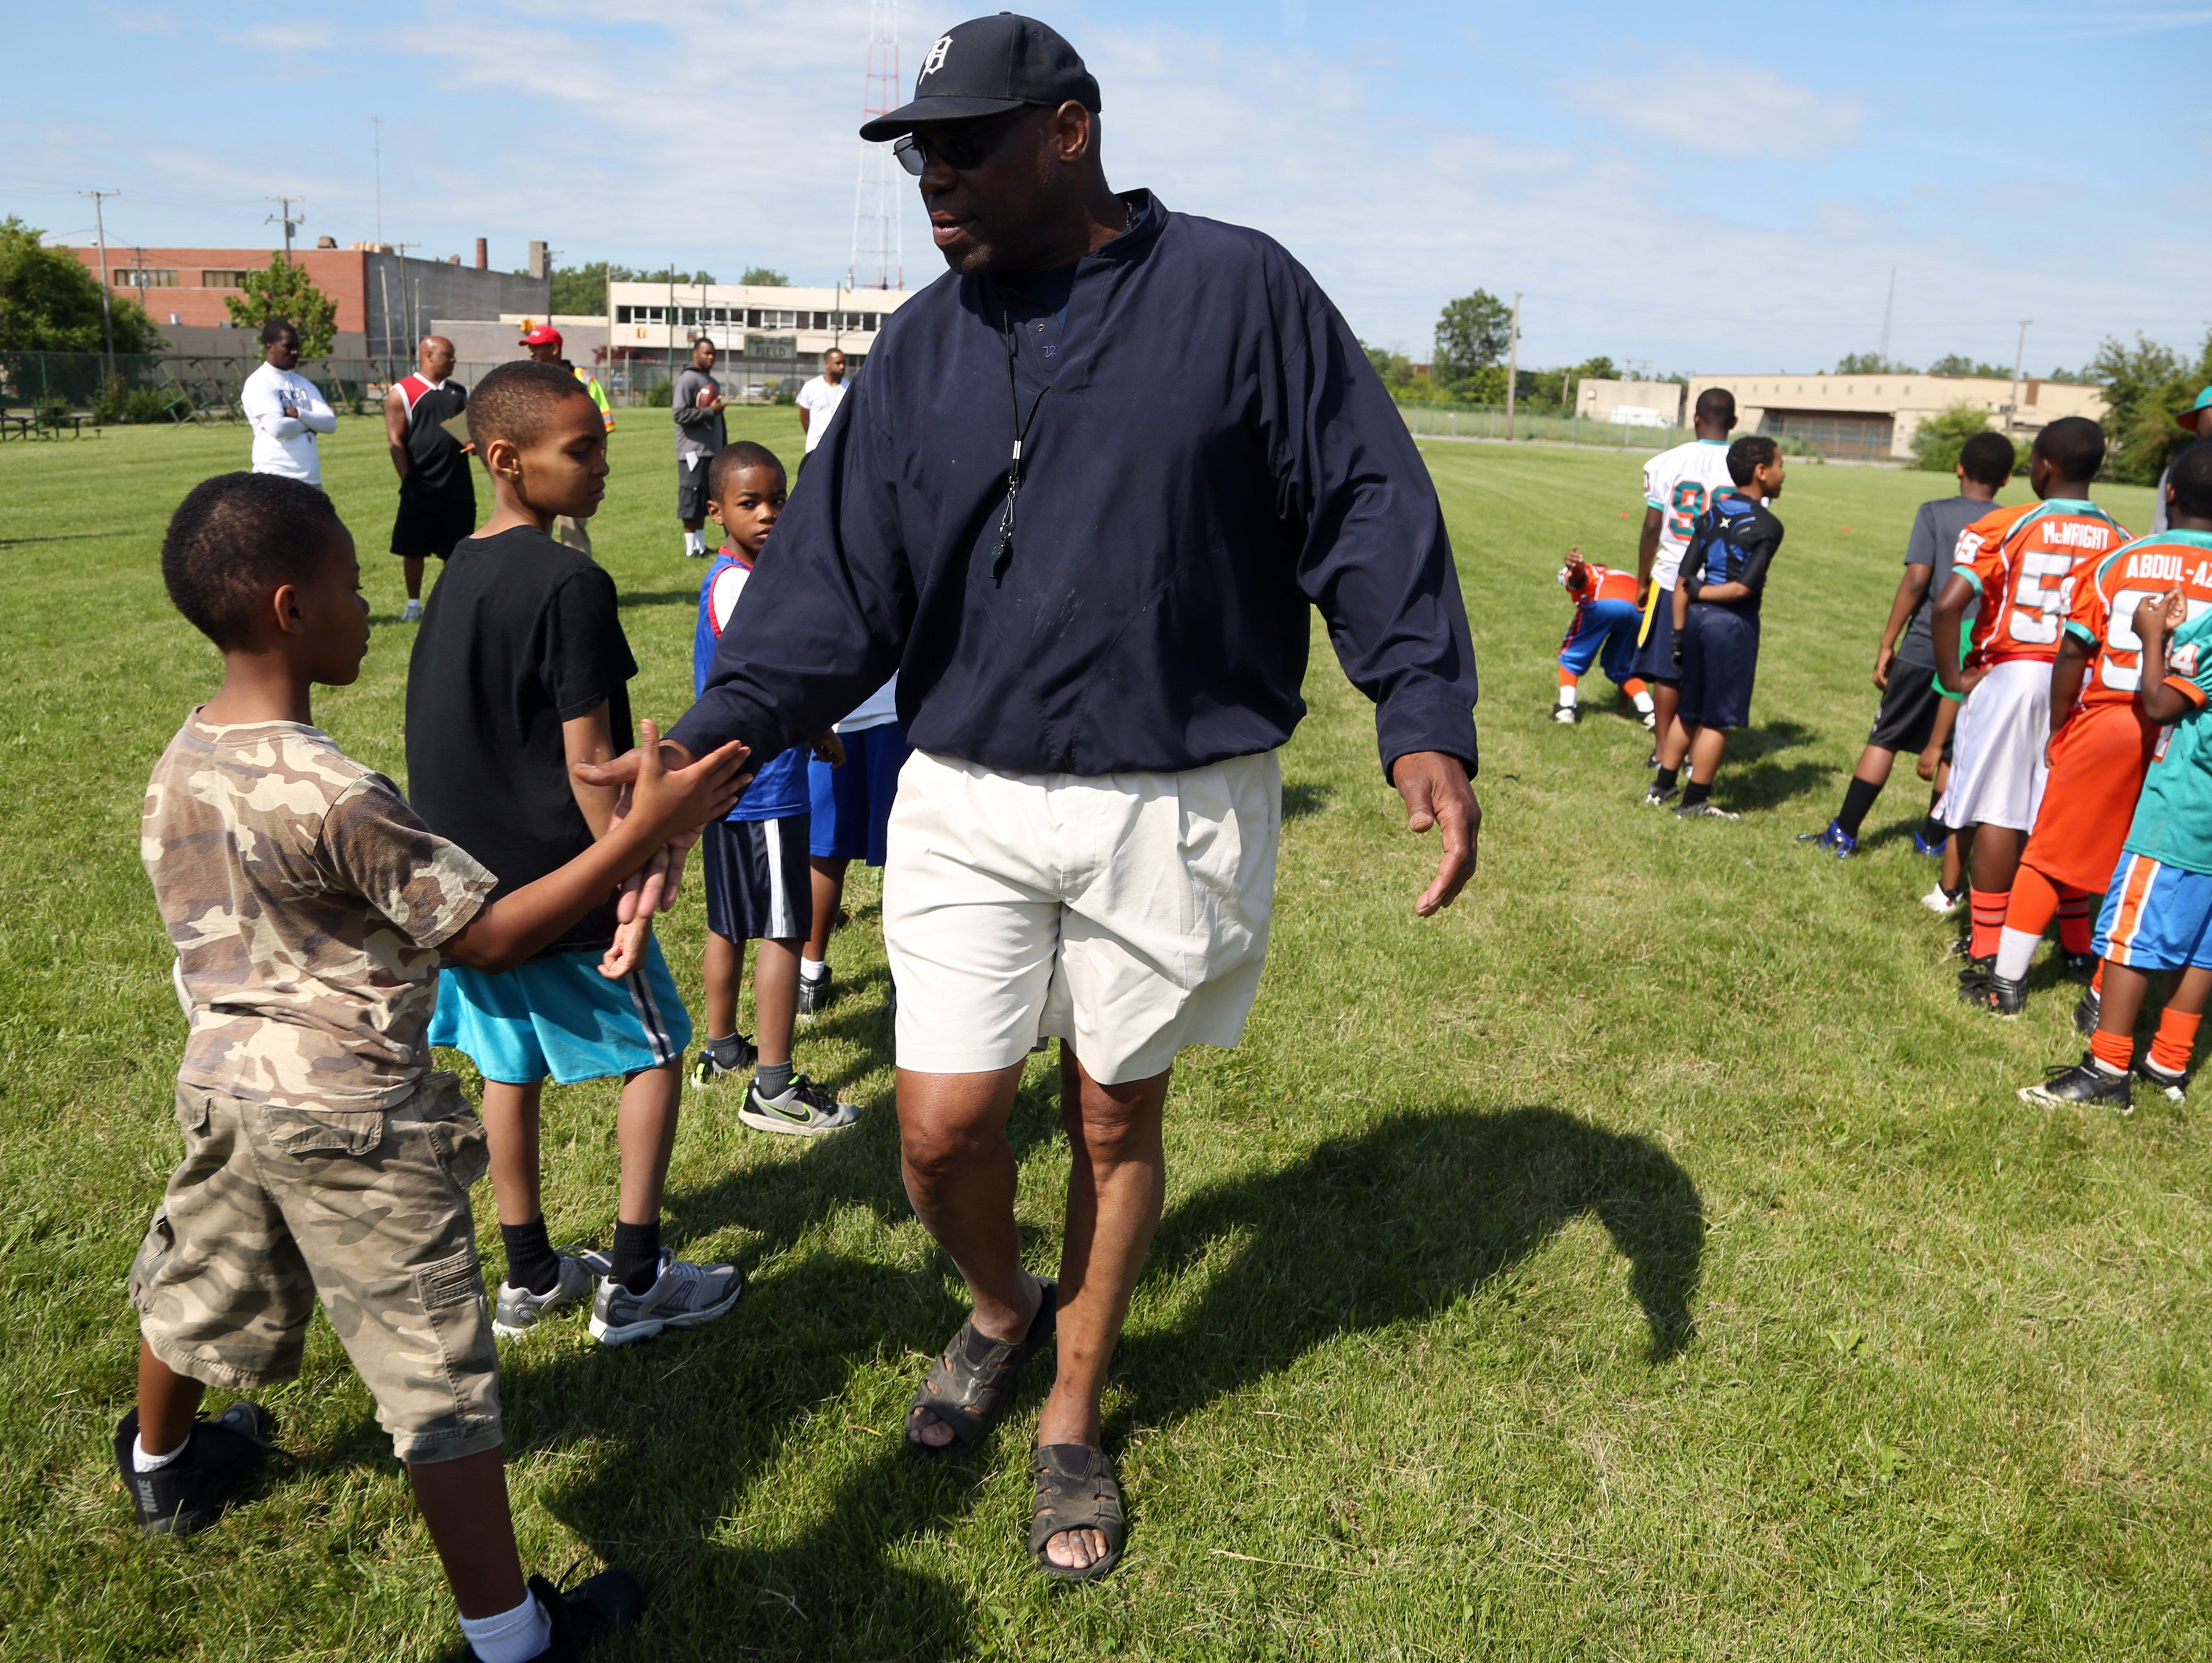 In June 2013, Reggie McKenzie, the former University of Michigan football and NFL player, encourages campers during the first of three days of his Reggie McKenzie All Pro Football Clinic at the Reggie McKenzie Field in Highland Park.